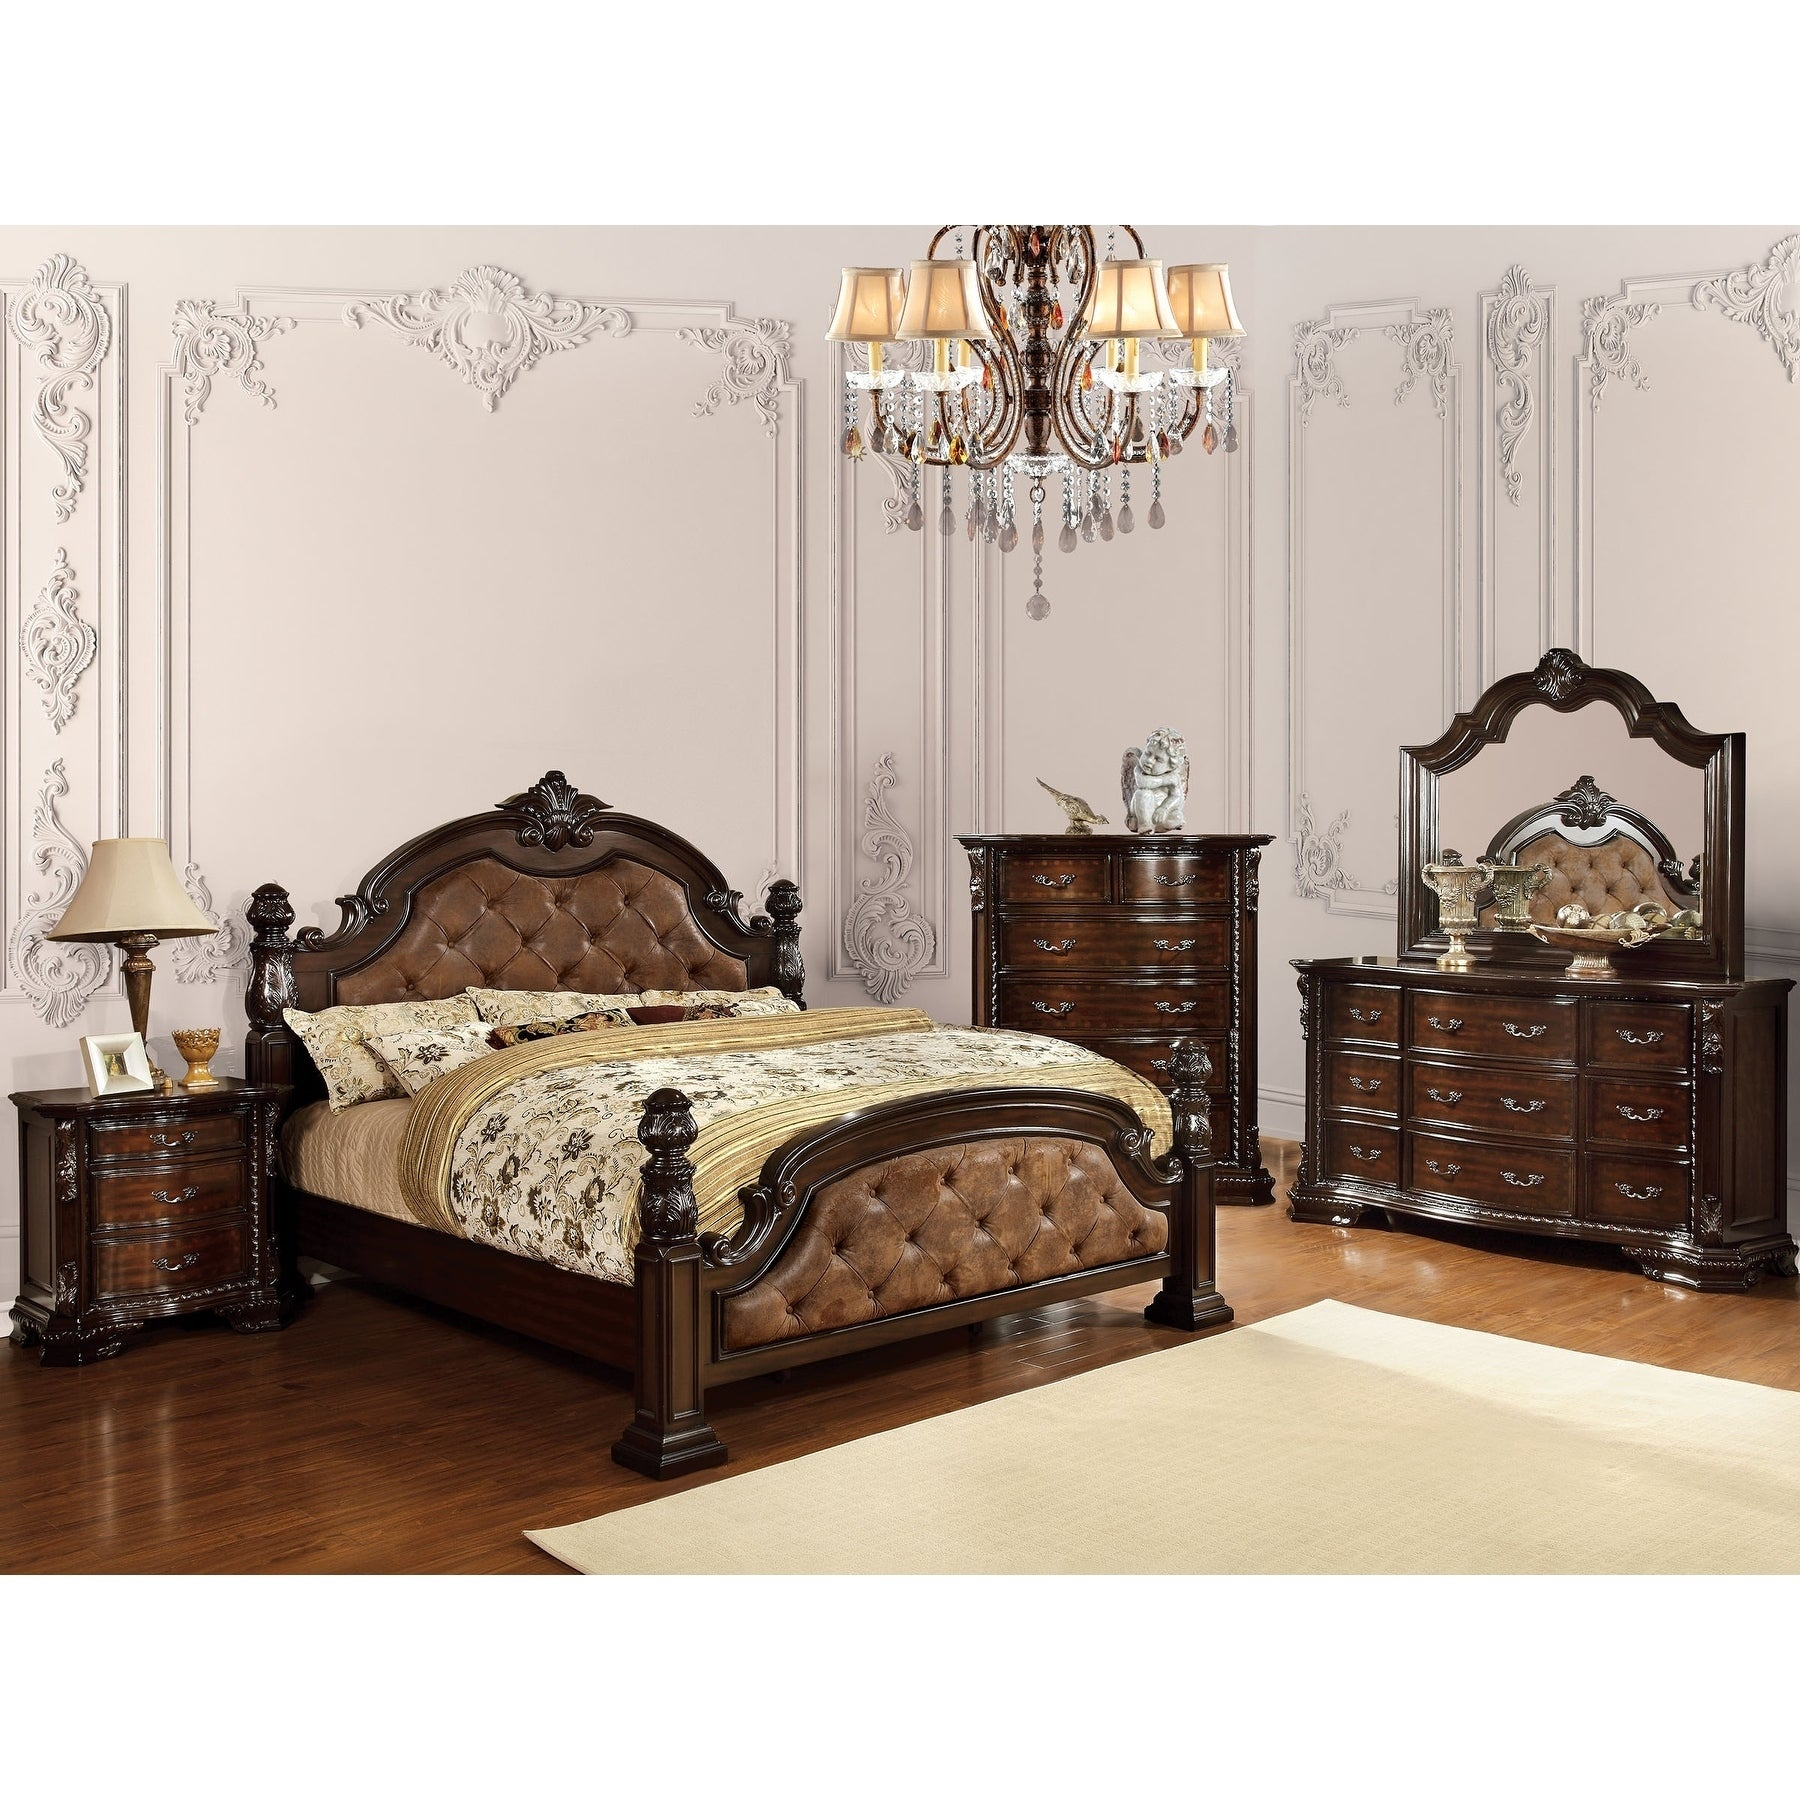 Williams Home Furnishing Monte Vista I C.King Bed in Dark Brown Finish (Nailhead Trim - Ivory - Natural - N/A)